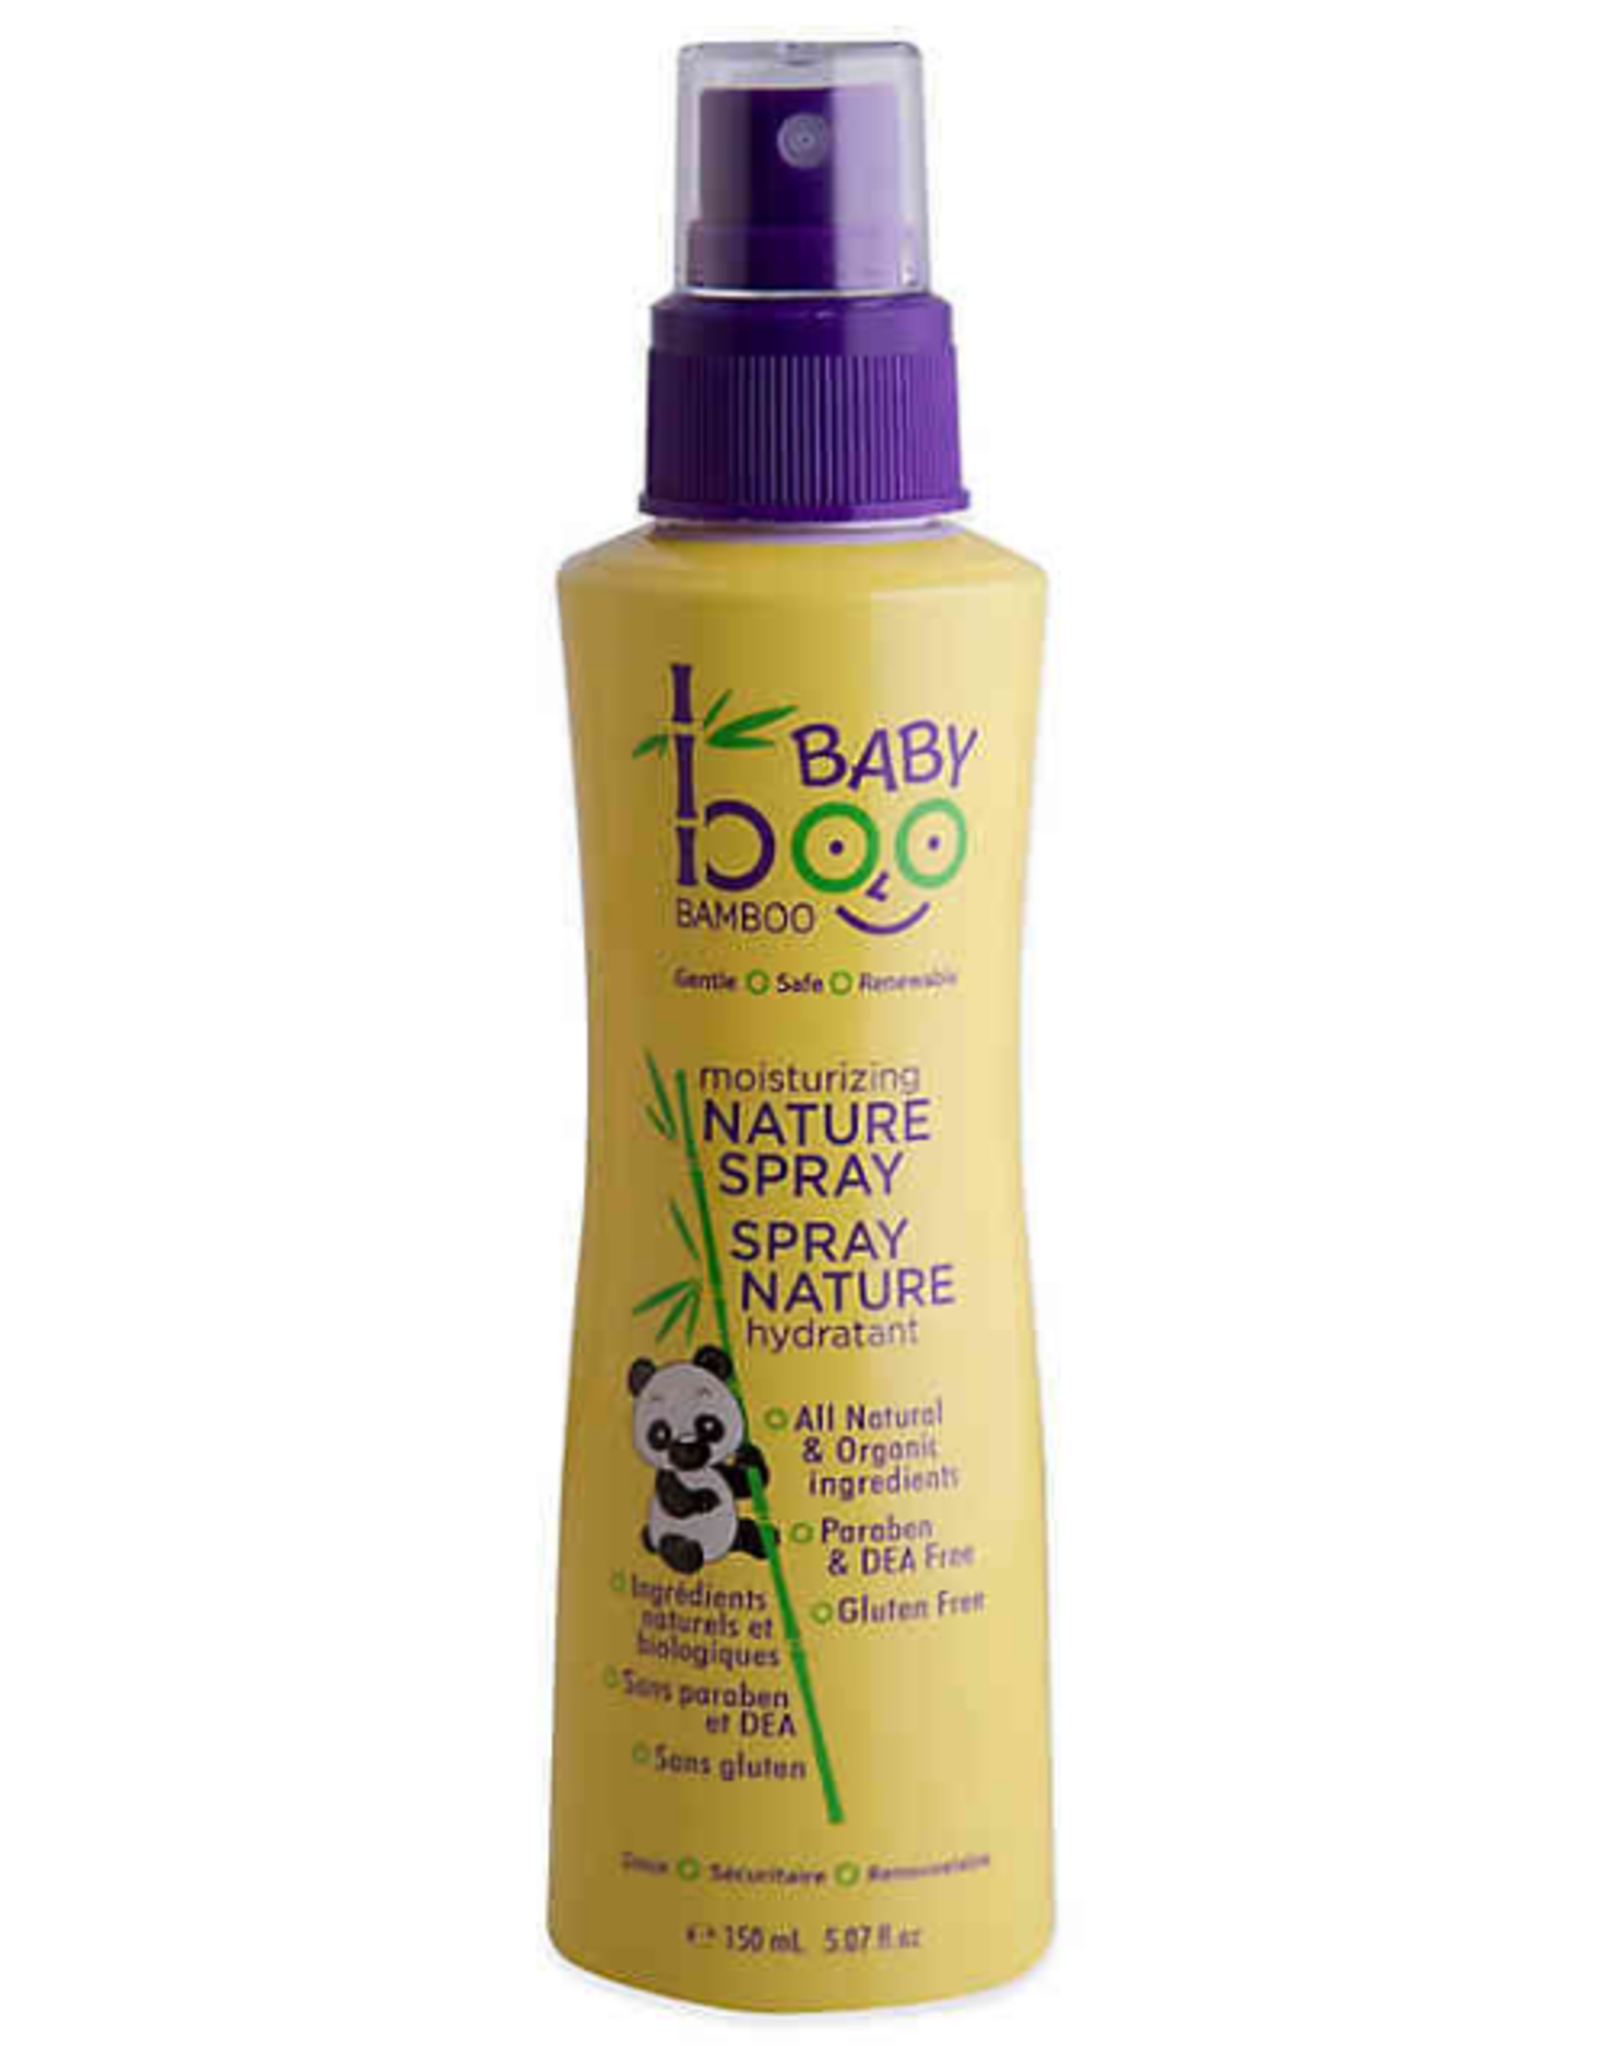 Baby Boo Bamboo - Mositurizing Natural Spray 150ml